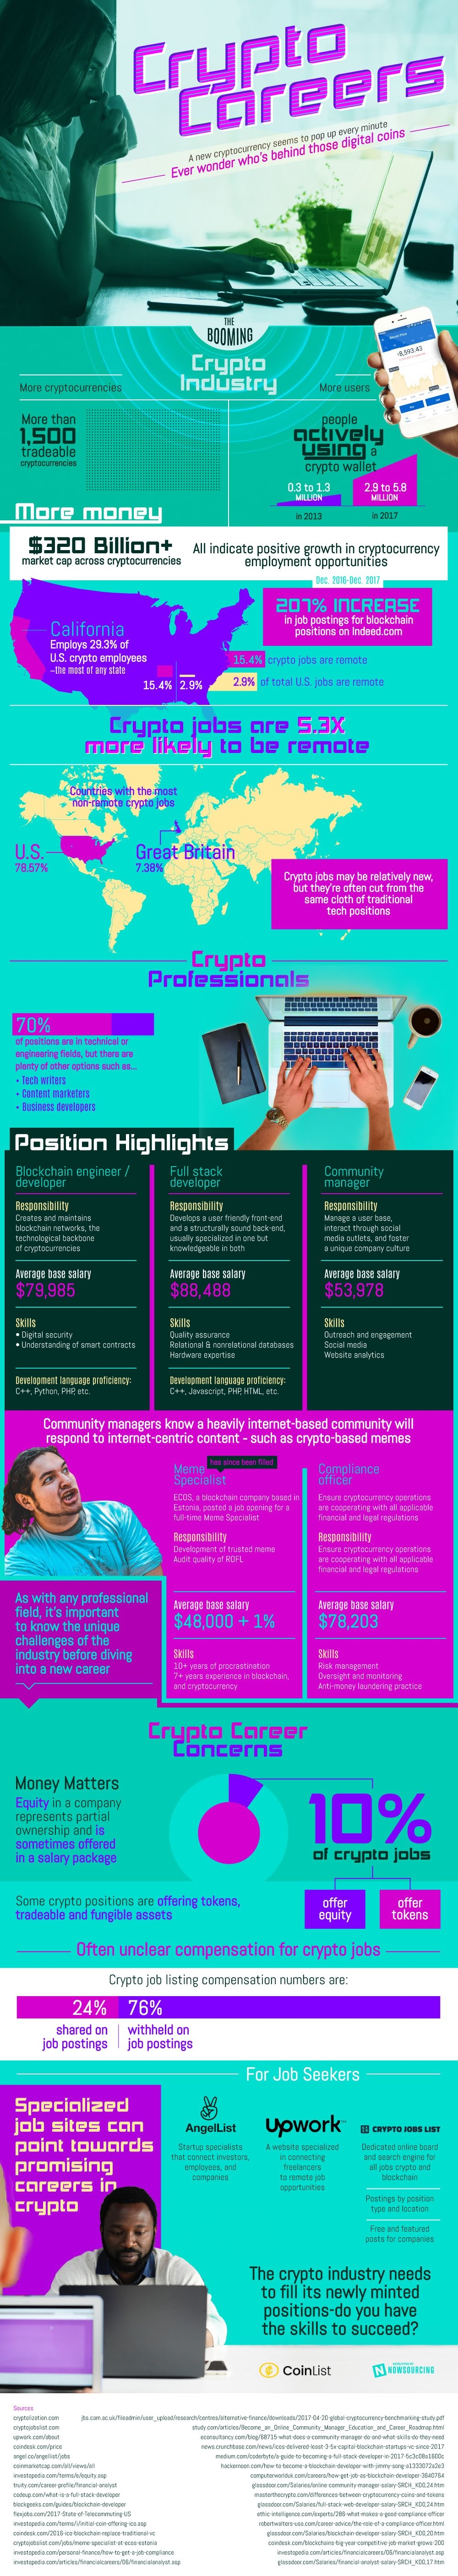 Crypto Careers – Cryptocurrencies Helping the Jobs Market - #infographic